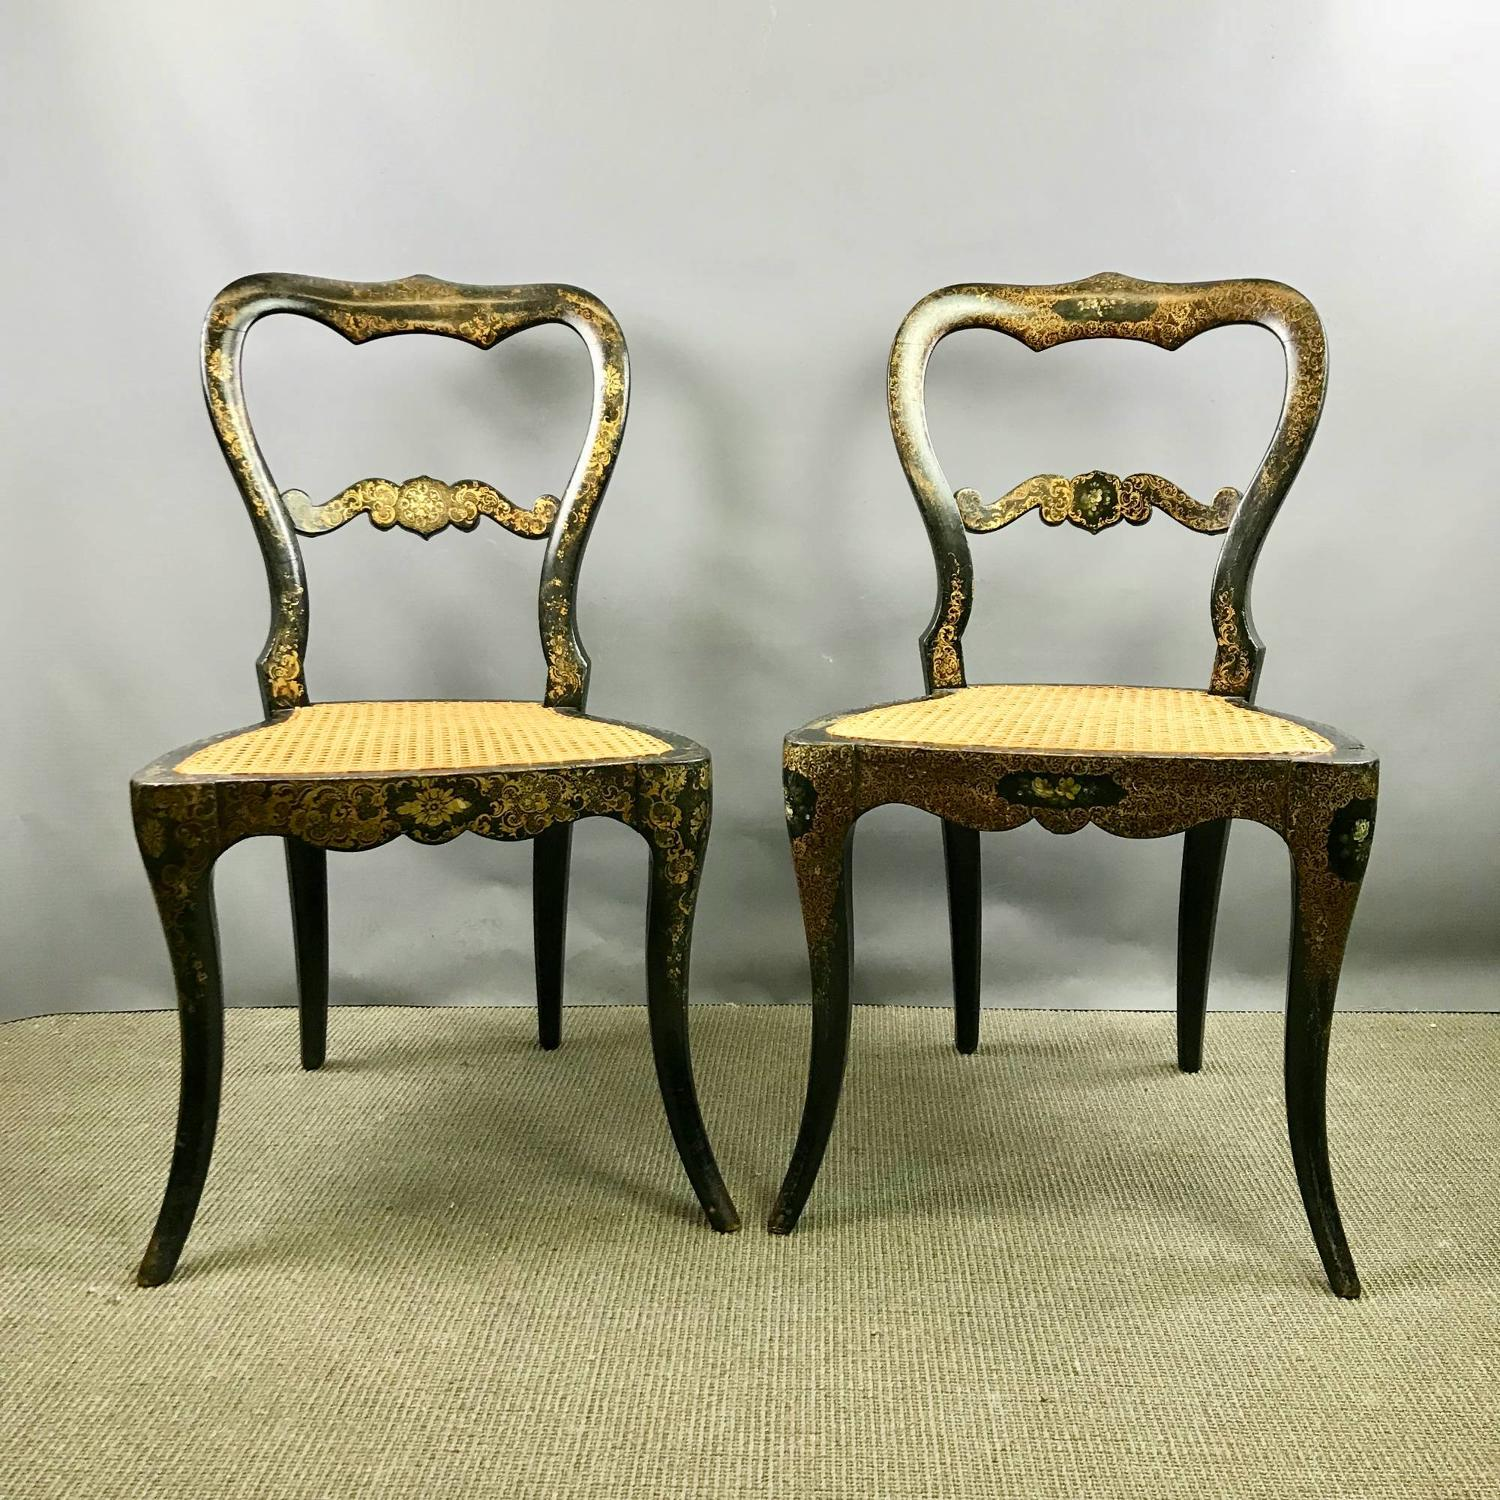 Pair of Victorian Gilt Decorated Japanned Chairs